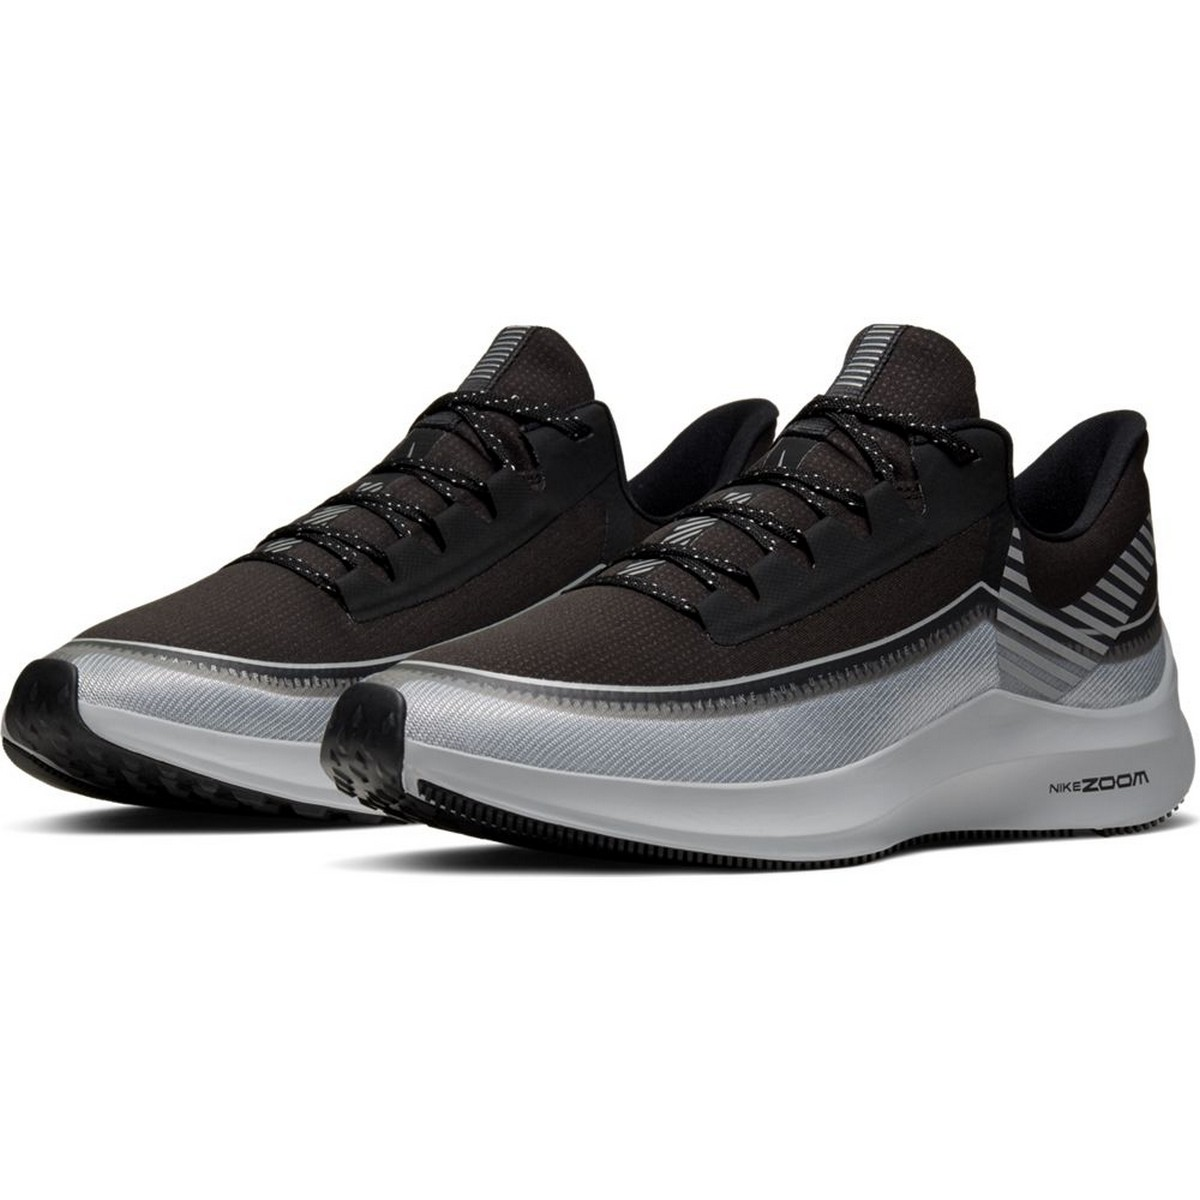 NIKE ZOOM WINFLO 6 SHIELD